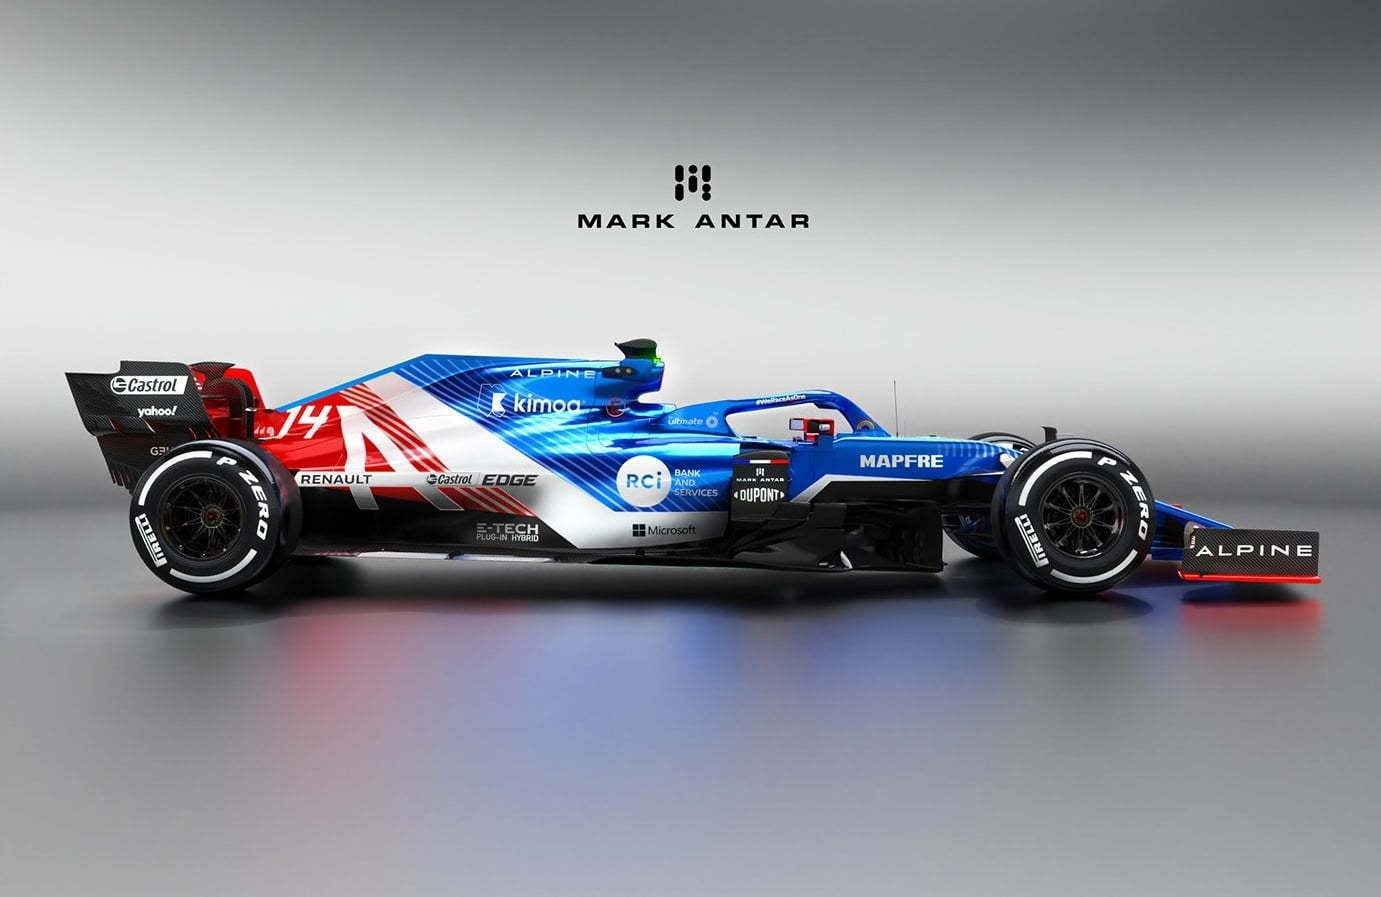 Alpine F1 Team 2020 / Mark Antar